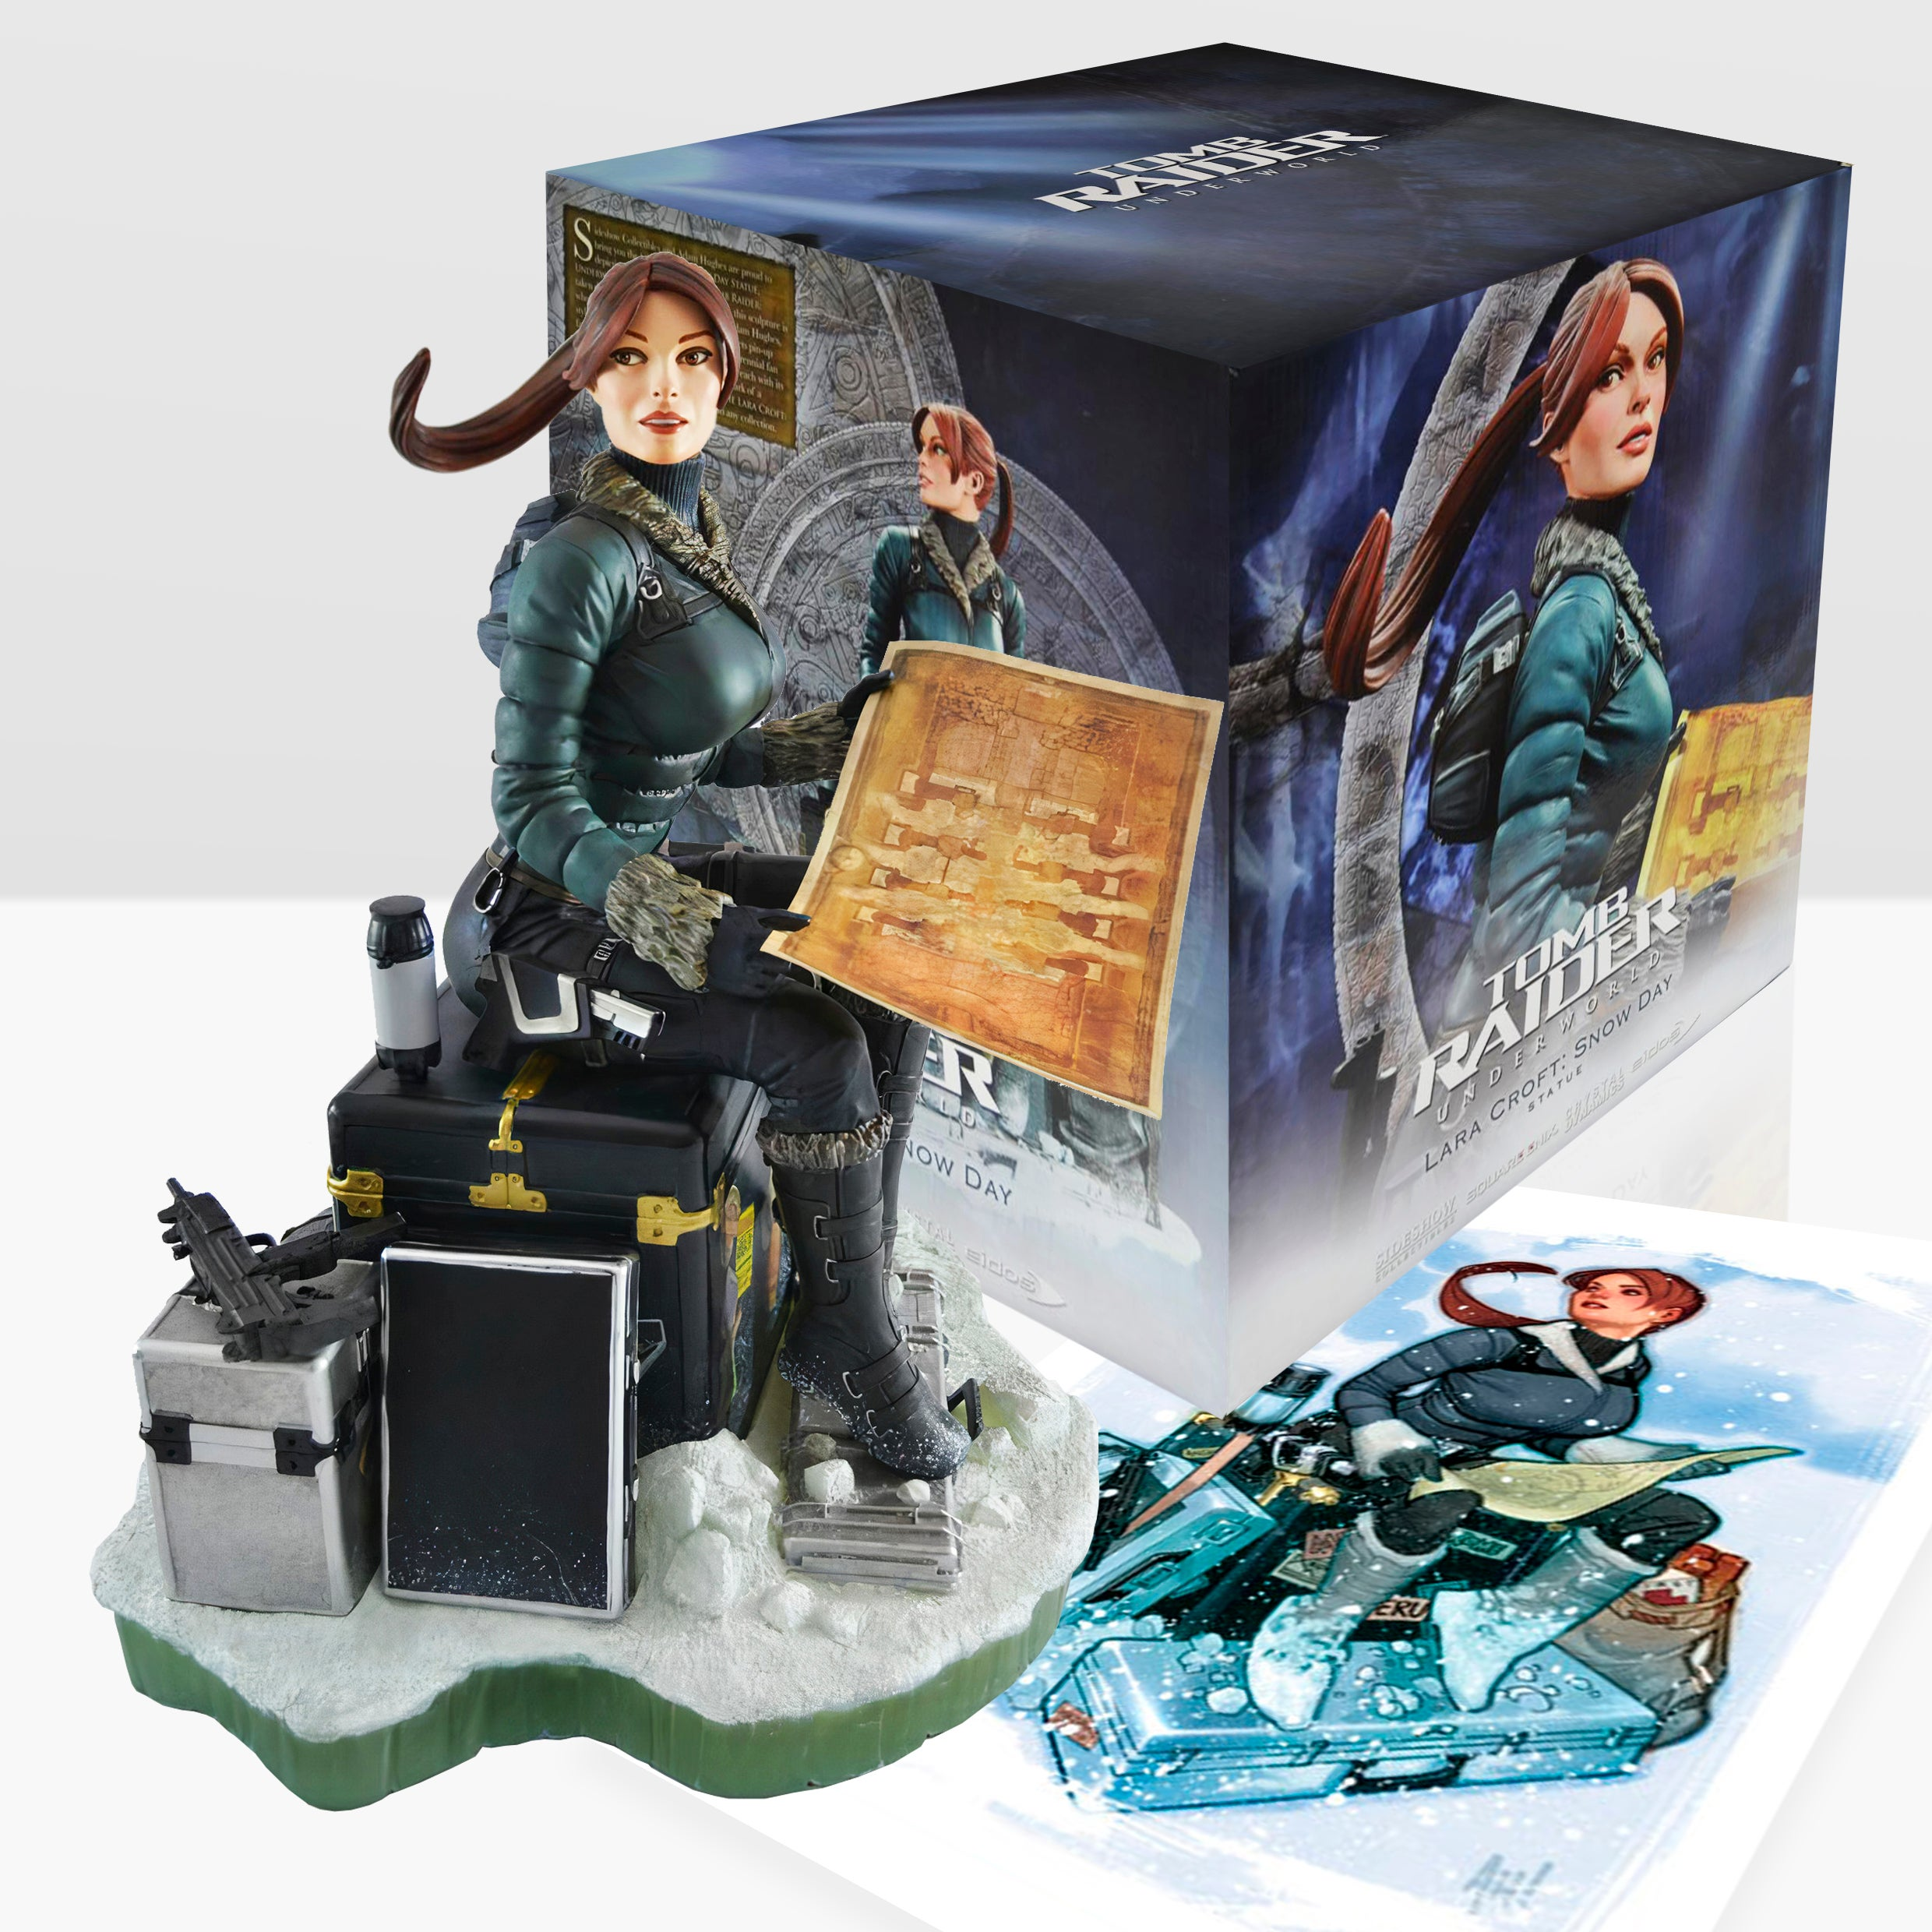 A picture of the Tomb Raider: Underworld snow day statue